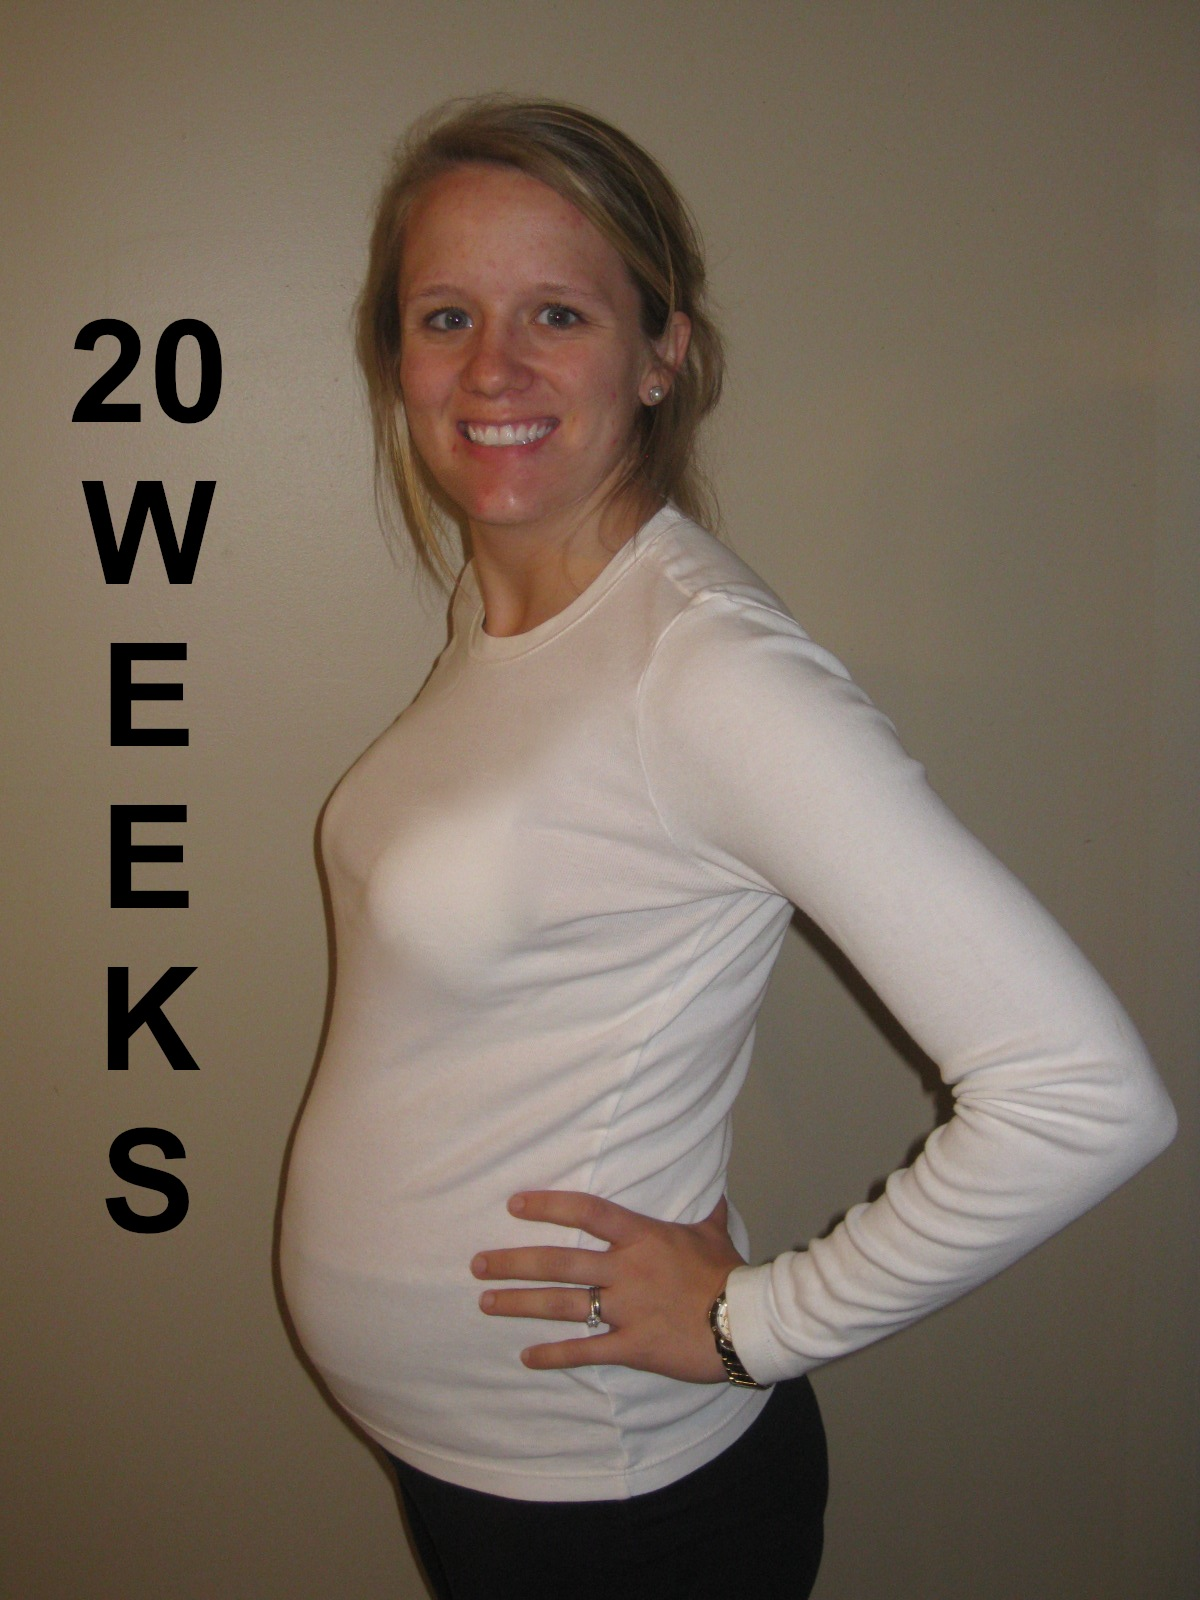 nausea at 34 weeks pregnant